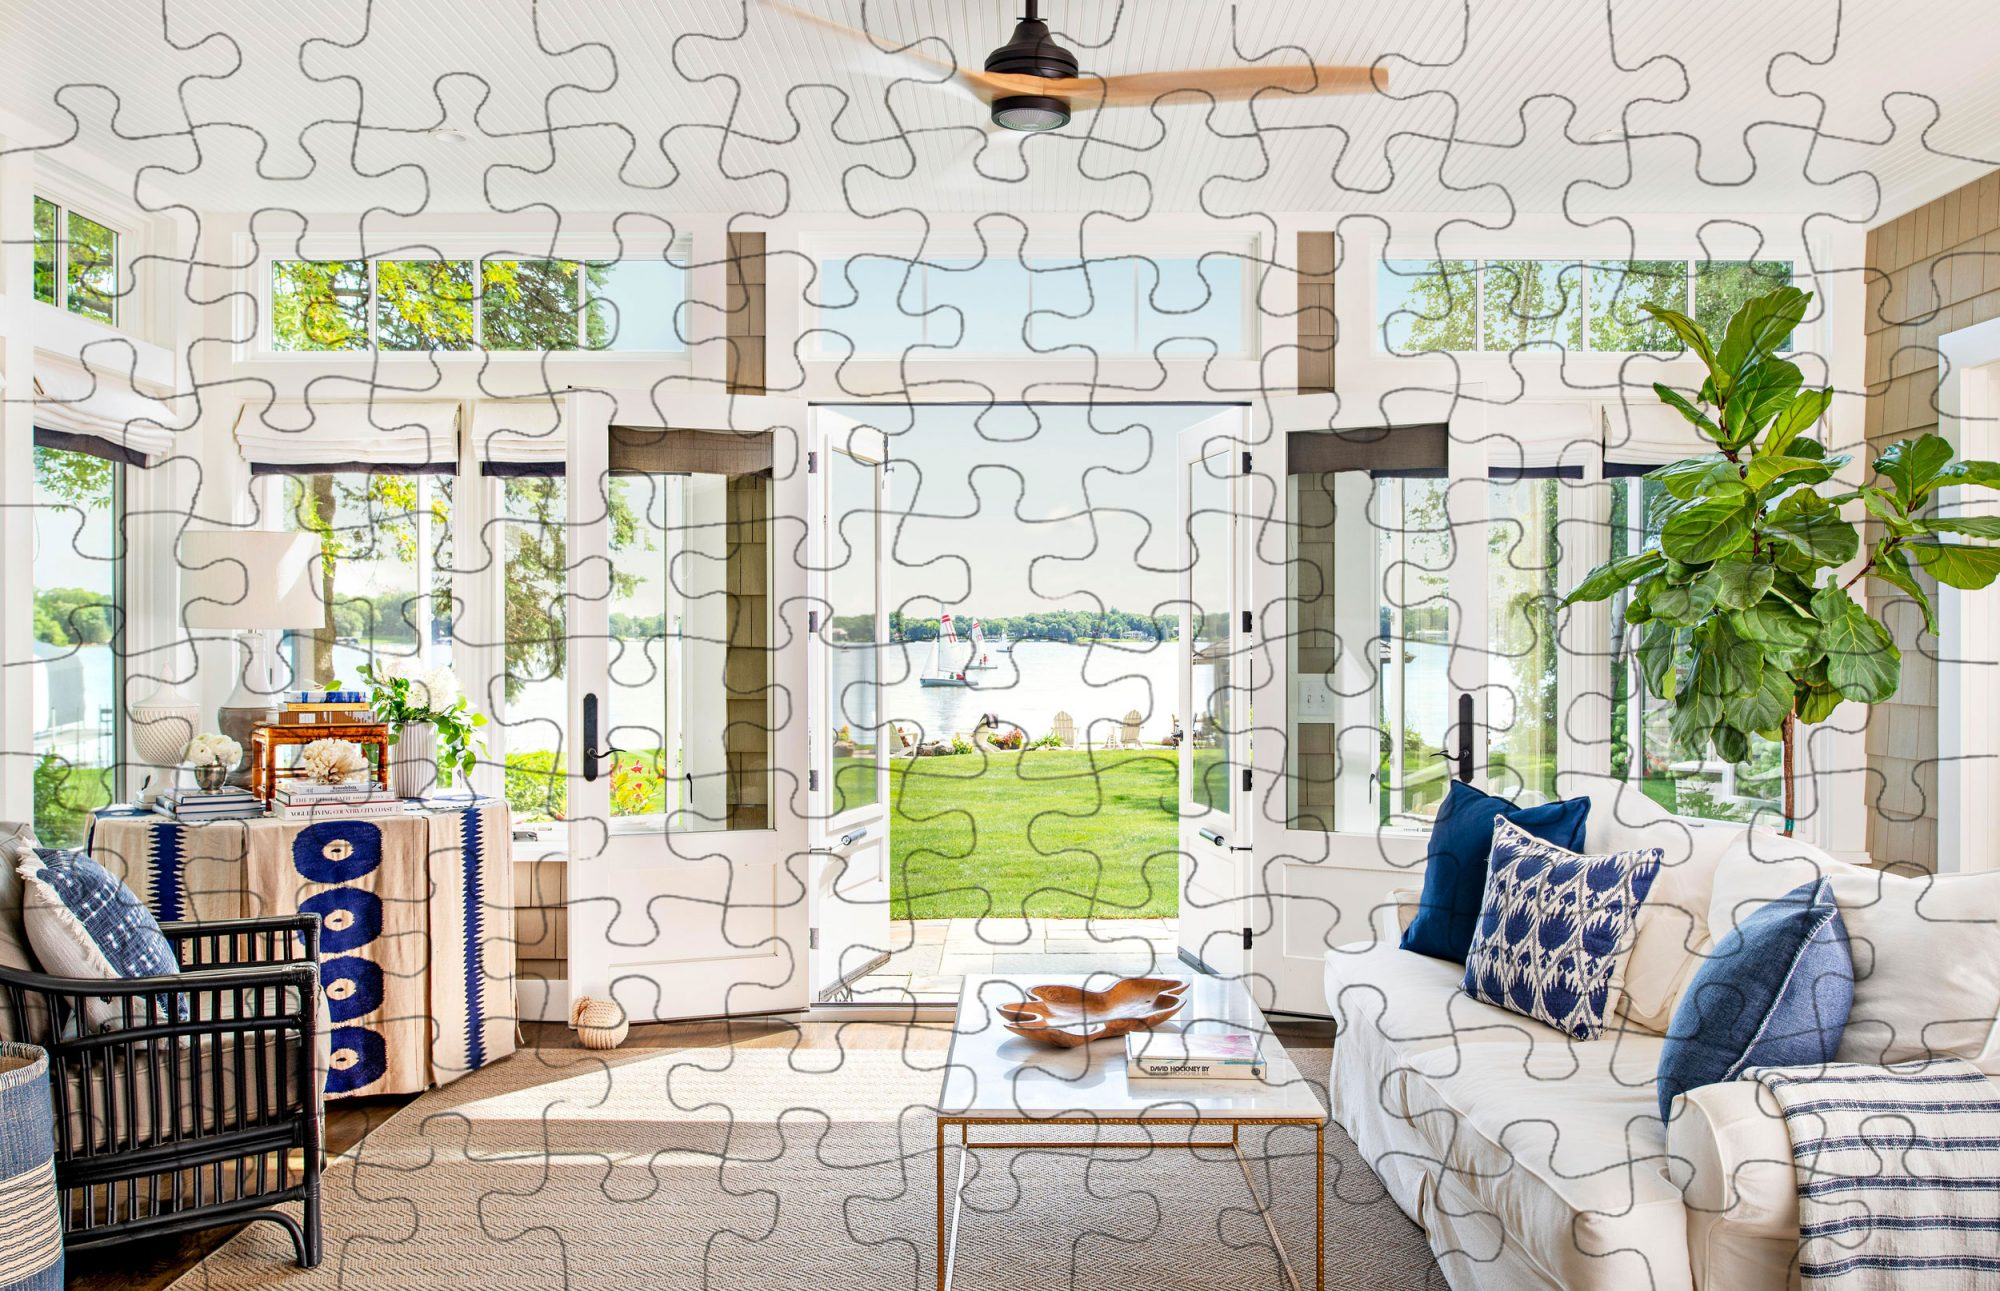 Digital jigsaw puzzle